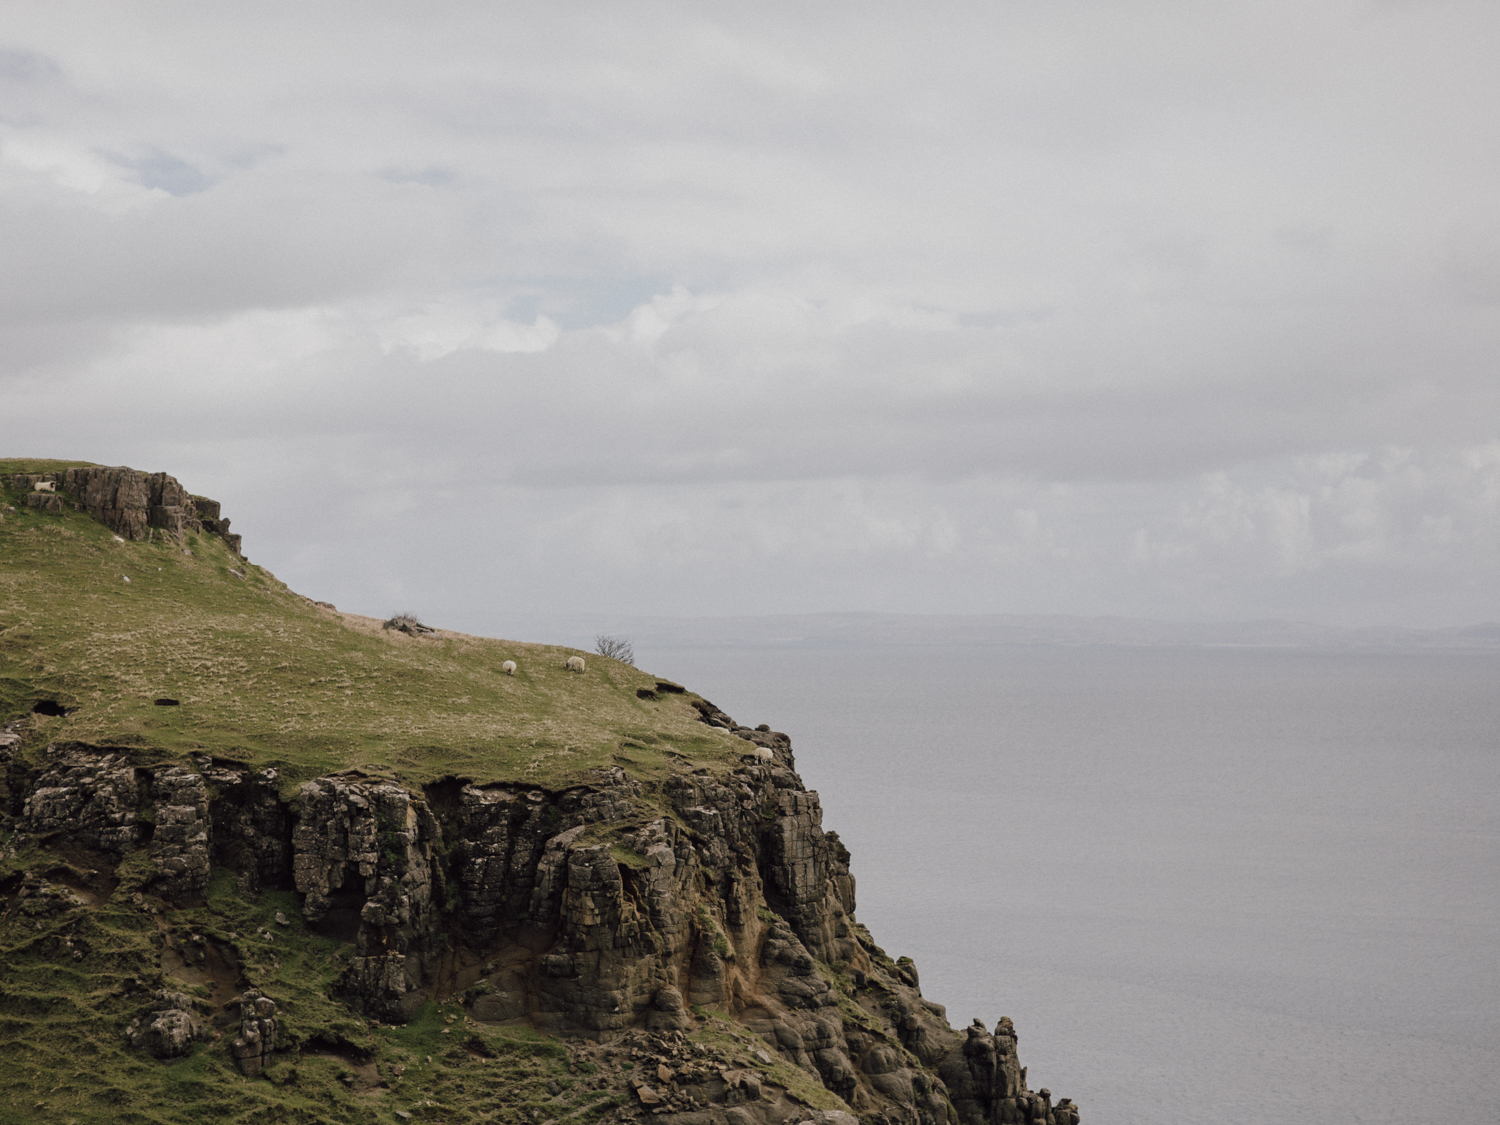 capyture-wedding-photographer-destination-elopement-isle-skye-scotland-5673